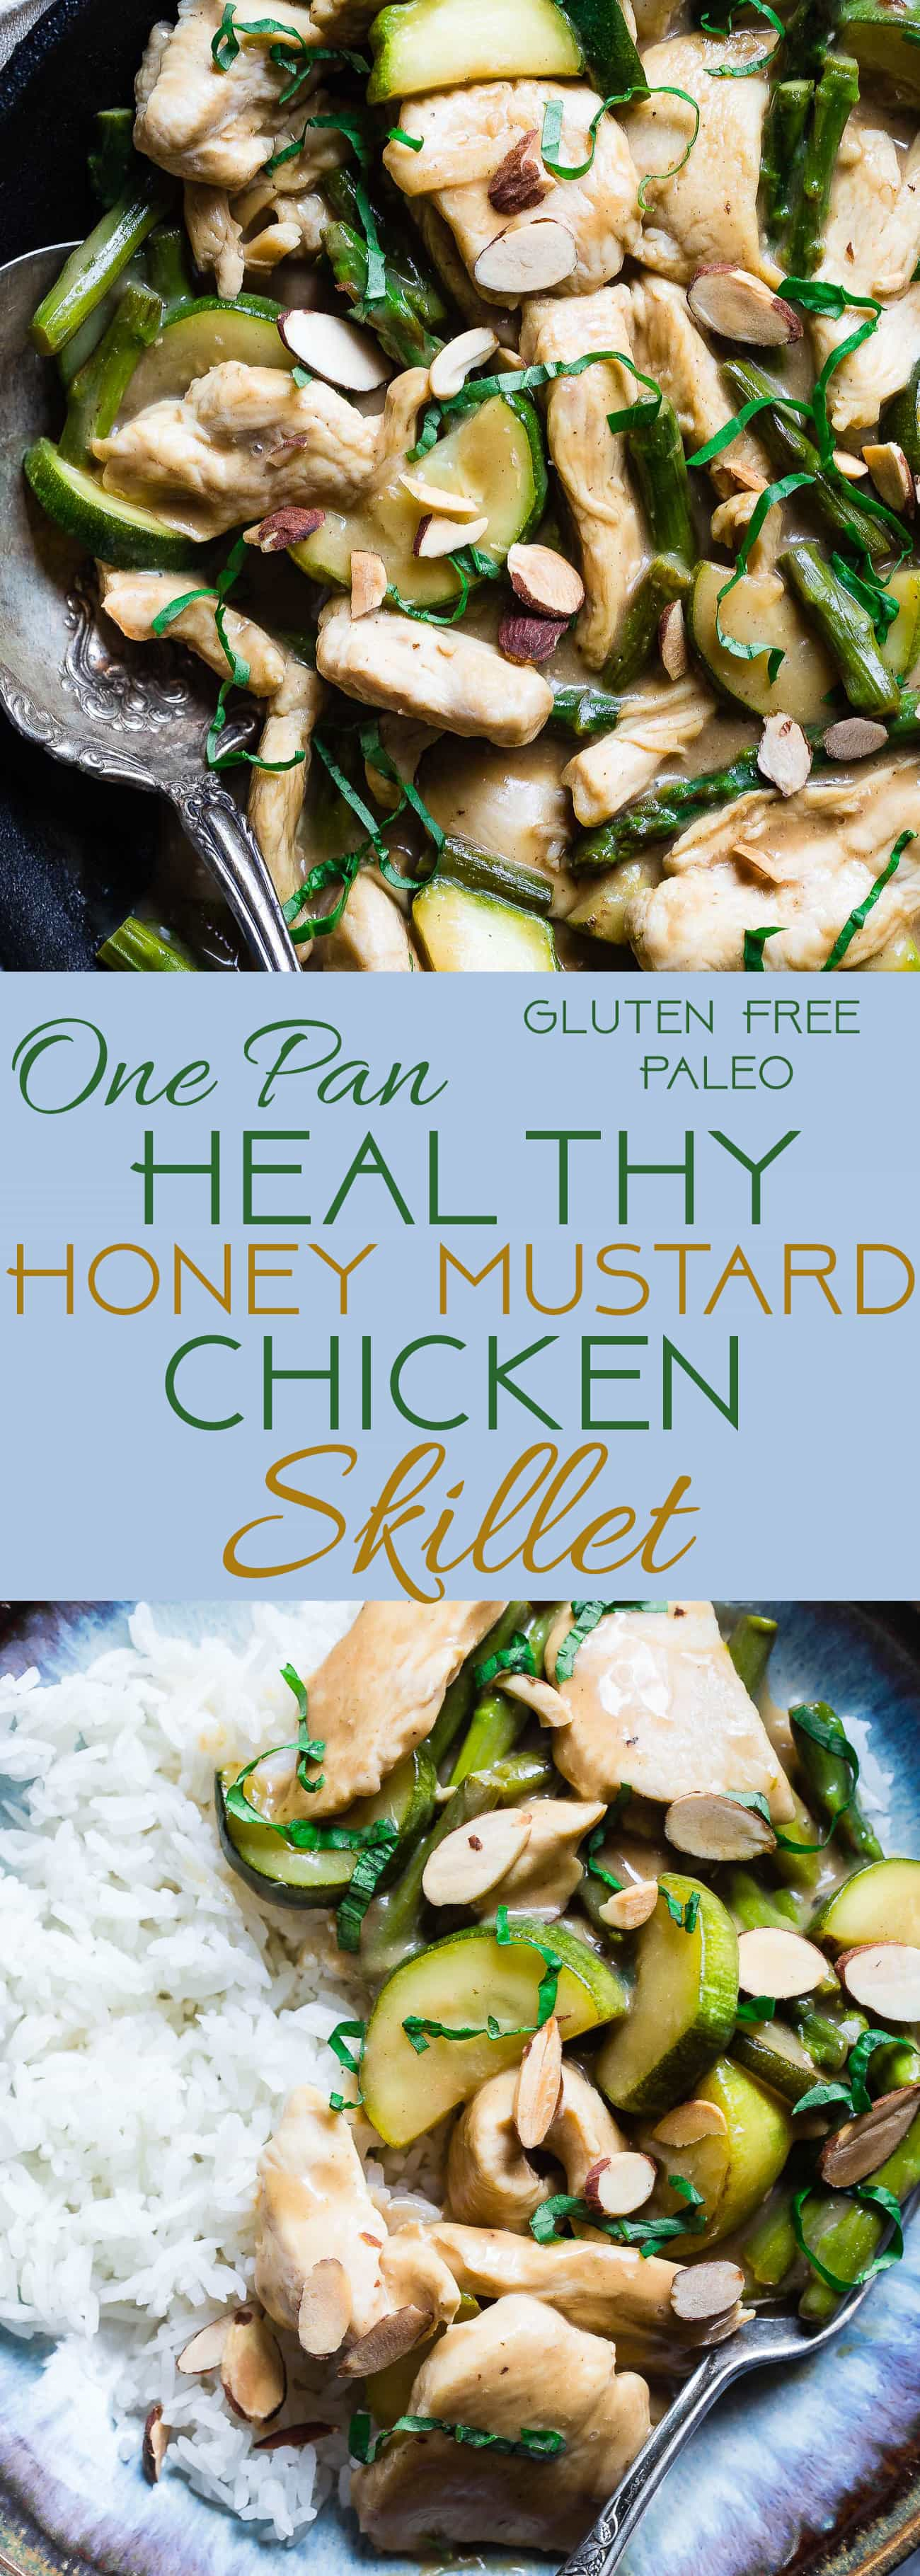 Easy Honey Mustard Chicken Skillet -  This paleo friendly chicken skillet is quick, easy and healthy! It's kid-friendly, 30 minute meal that makes great leftovers and perfect for busy weeknights! | Foodfaithfitness.com | @FoodFaithFit | Healthy honey mustard chicken. healthy chicken recipes. paleo chicken recipes. kid friendly dinners. one pot meals. 30 min meals.